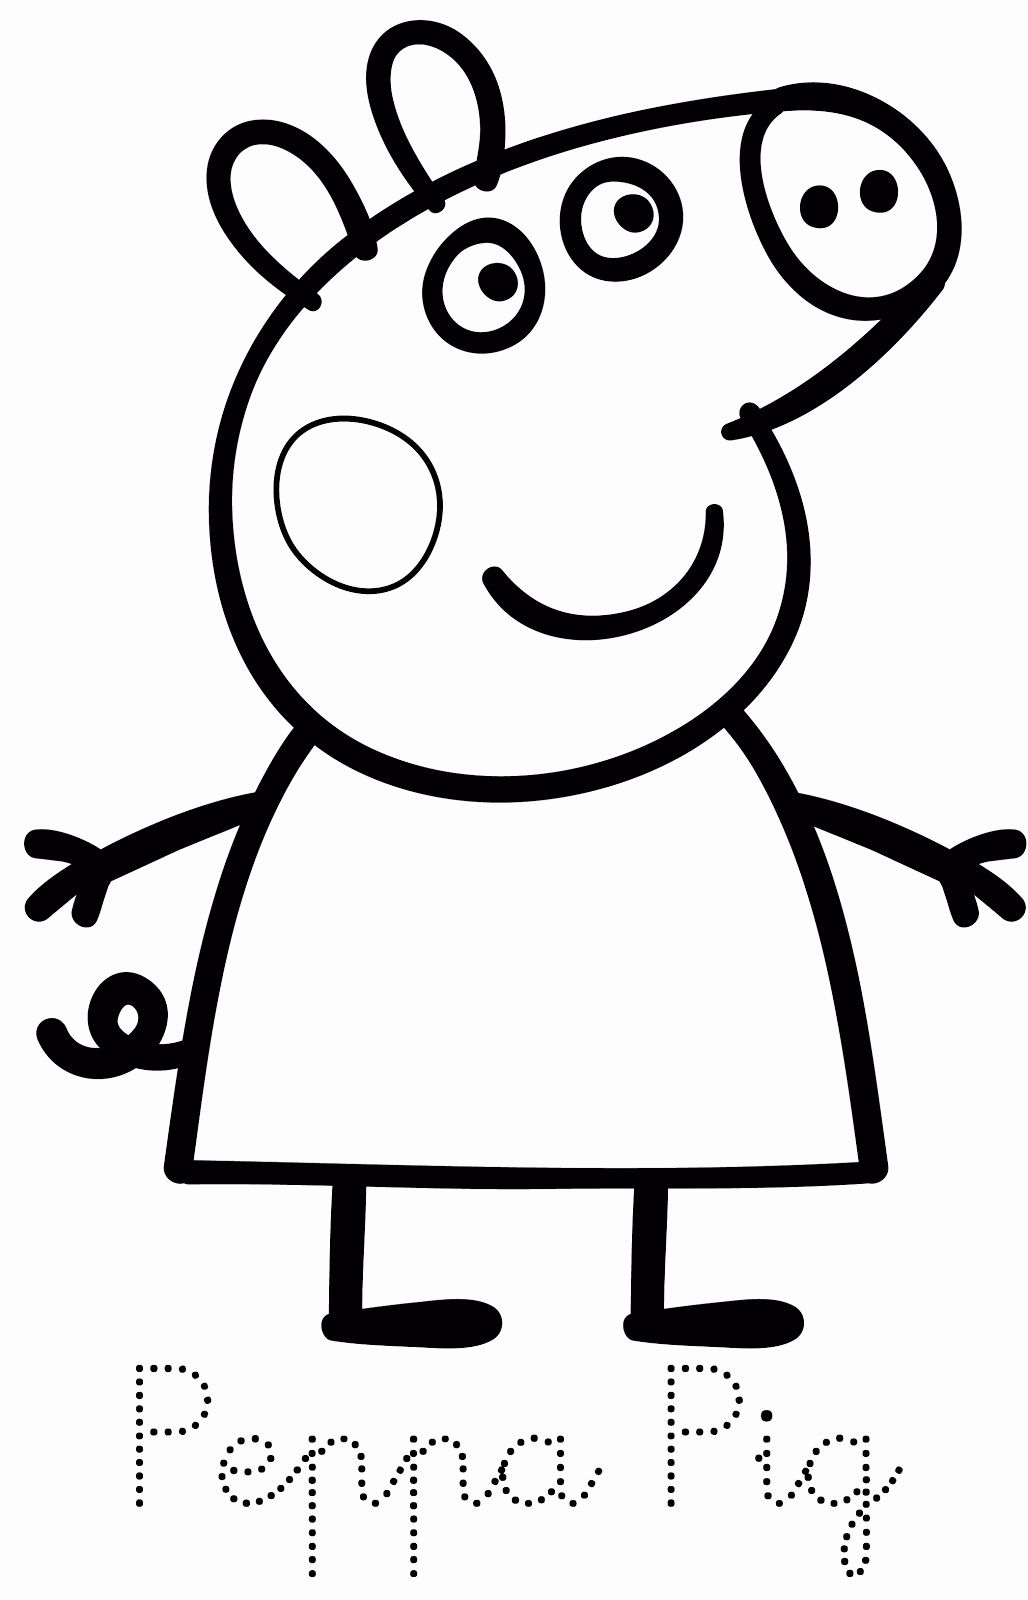 Pig Coloring Pages Fresh Peppa Pig Coloring Pages Free Printable Coloring Home Peppa Pig Colouring Peppa Pig Coloring Pages Coloring Books